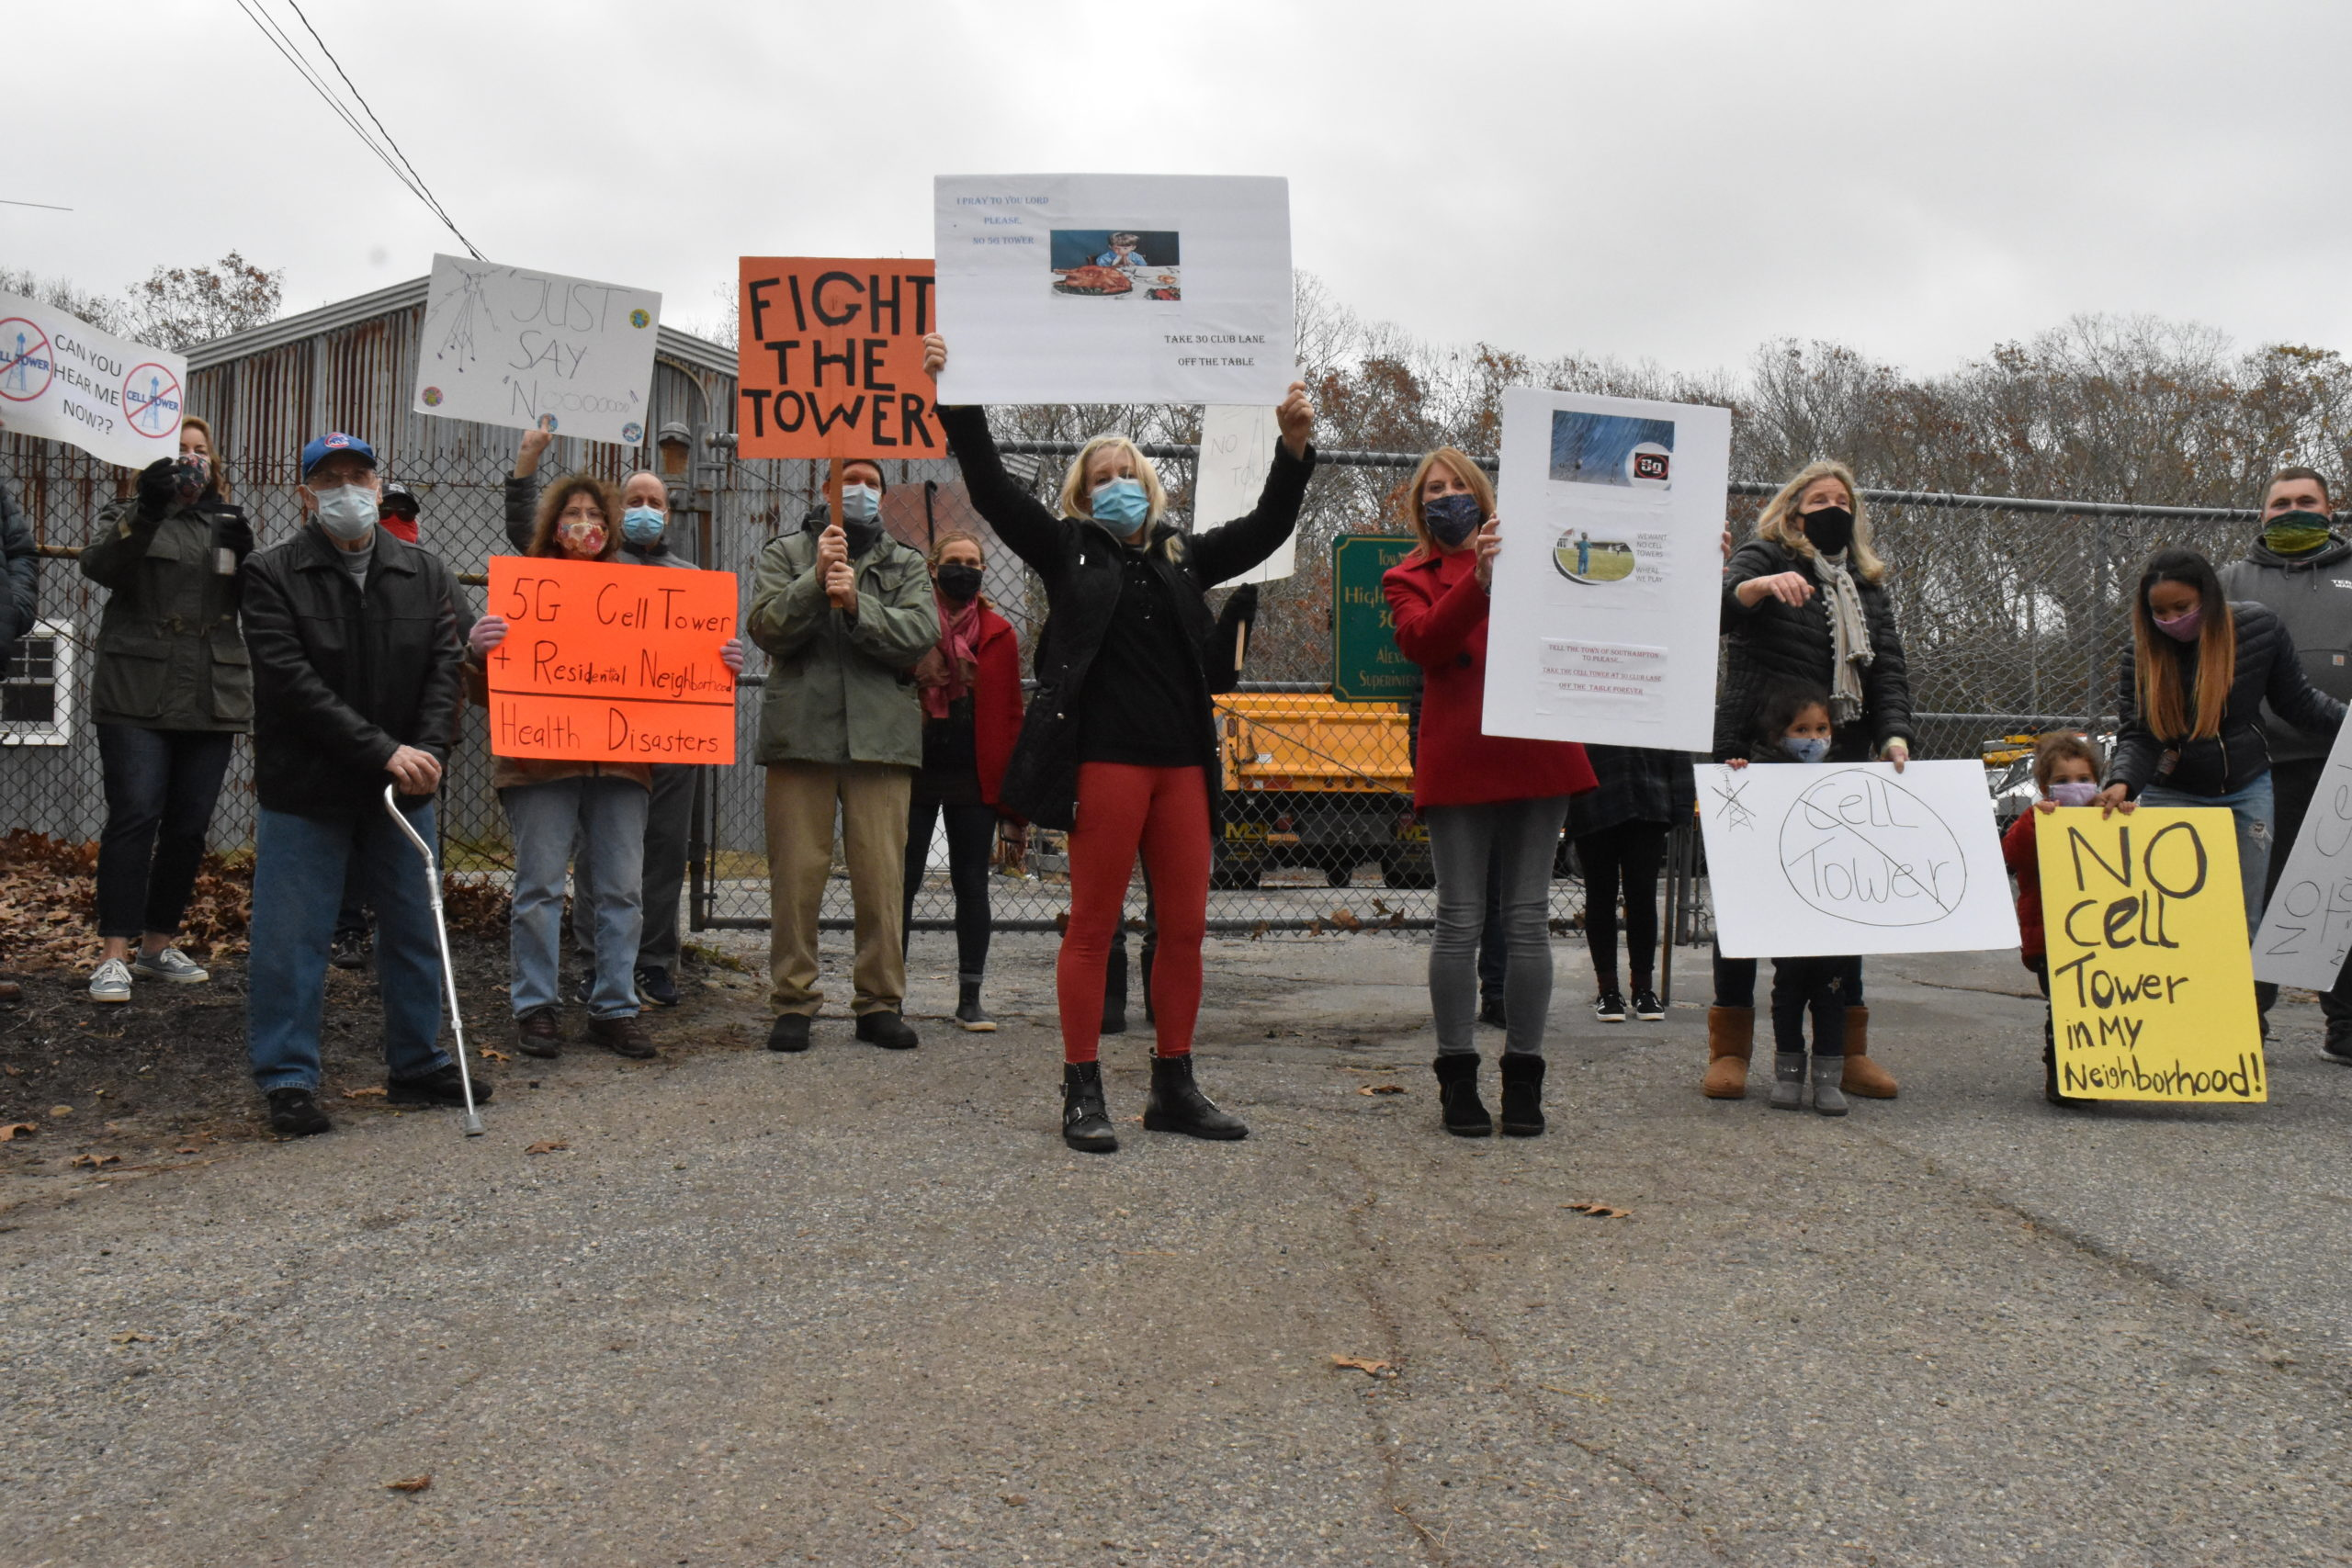 Noyac residents gathered Sunday to protest a proposal to build a cell tower at the Southampton Town Highway Department property at 30 Club Lane. STEPHEN J. KOTZ